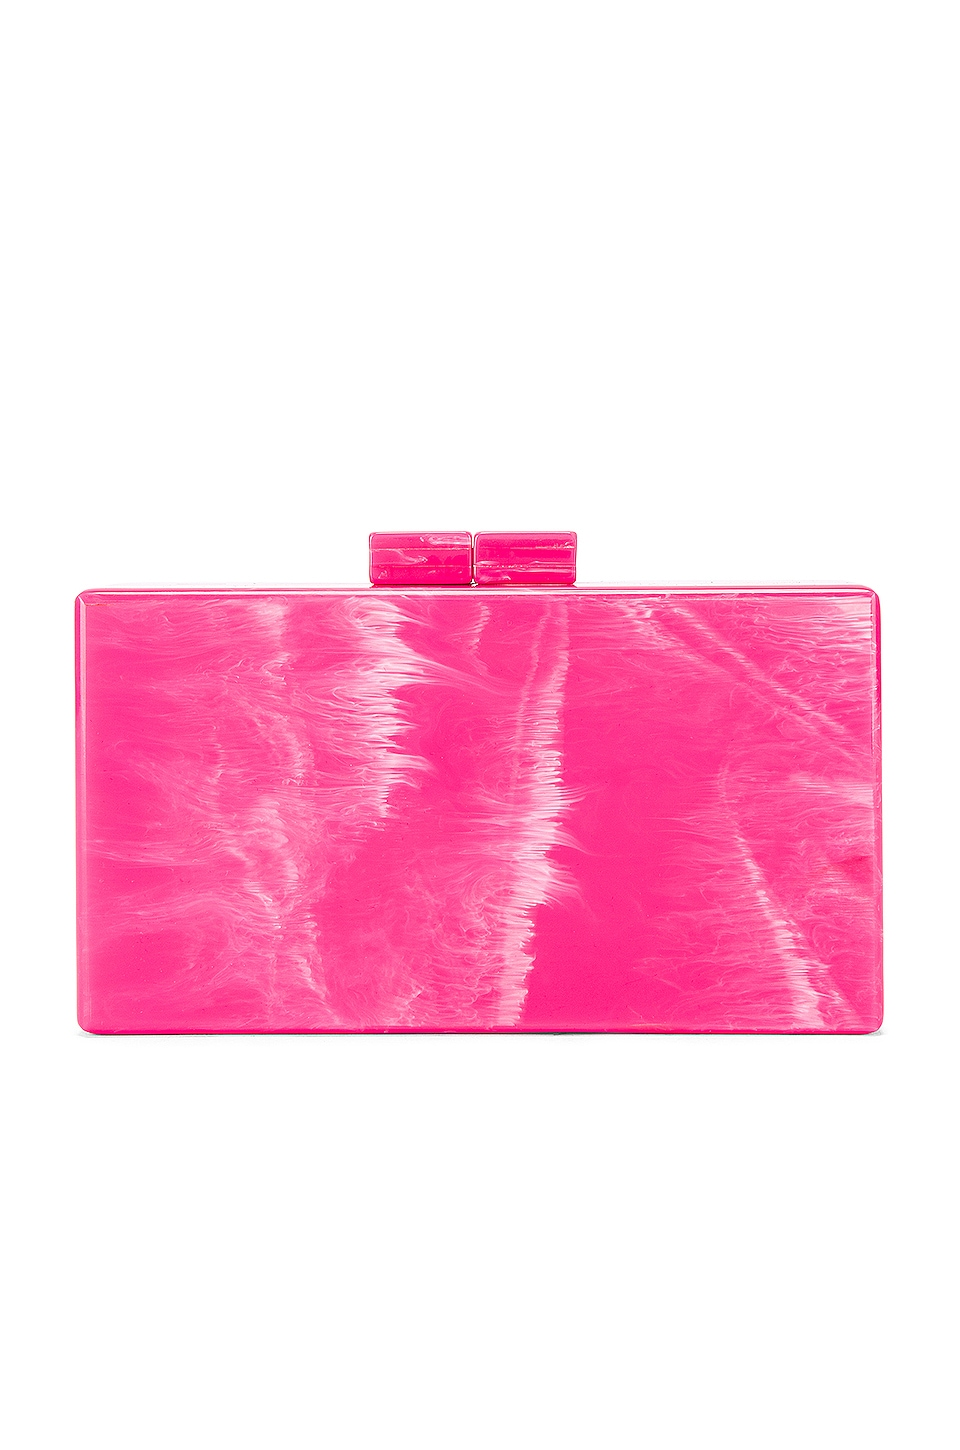 Amber Sceats Box Clutch in Hot Pink